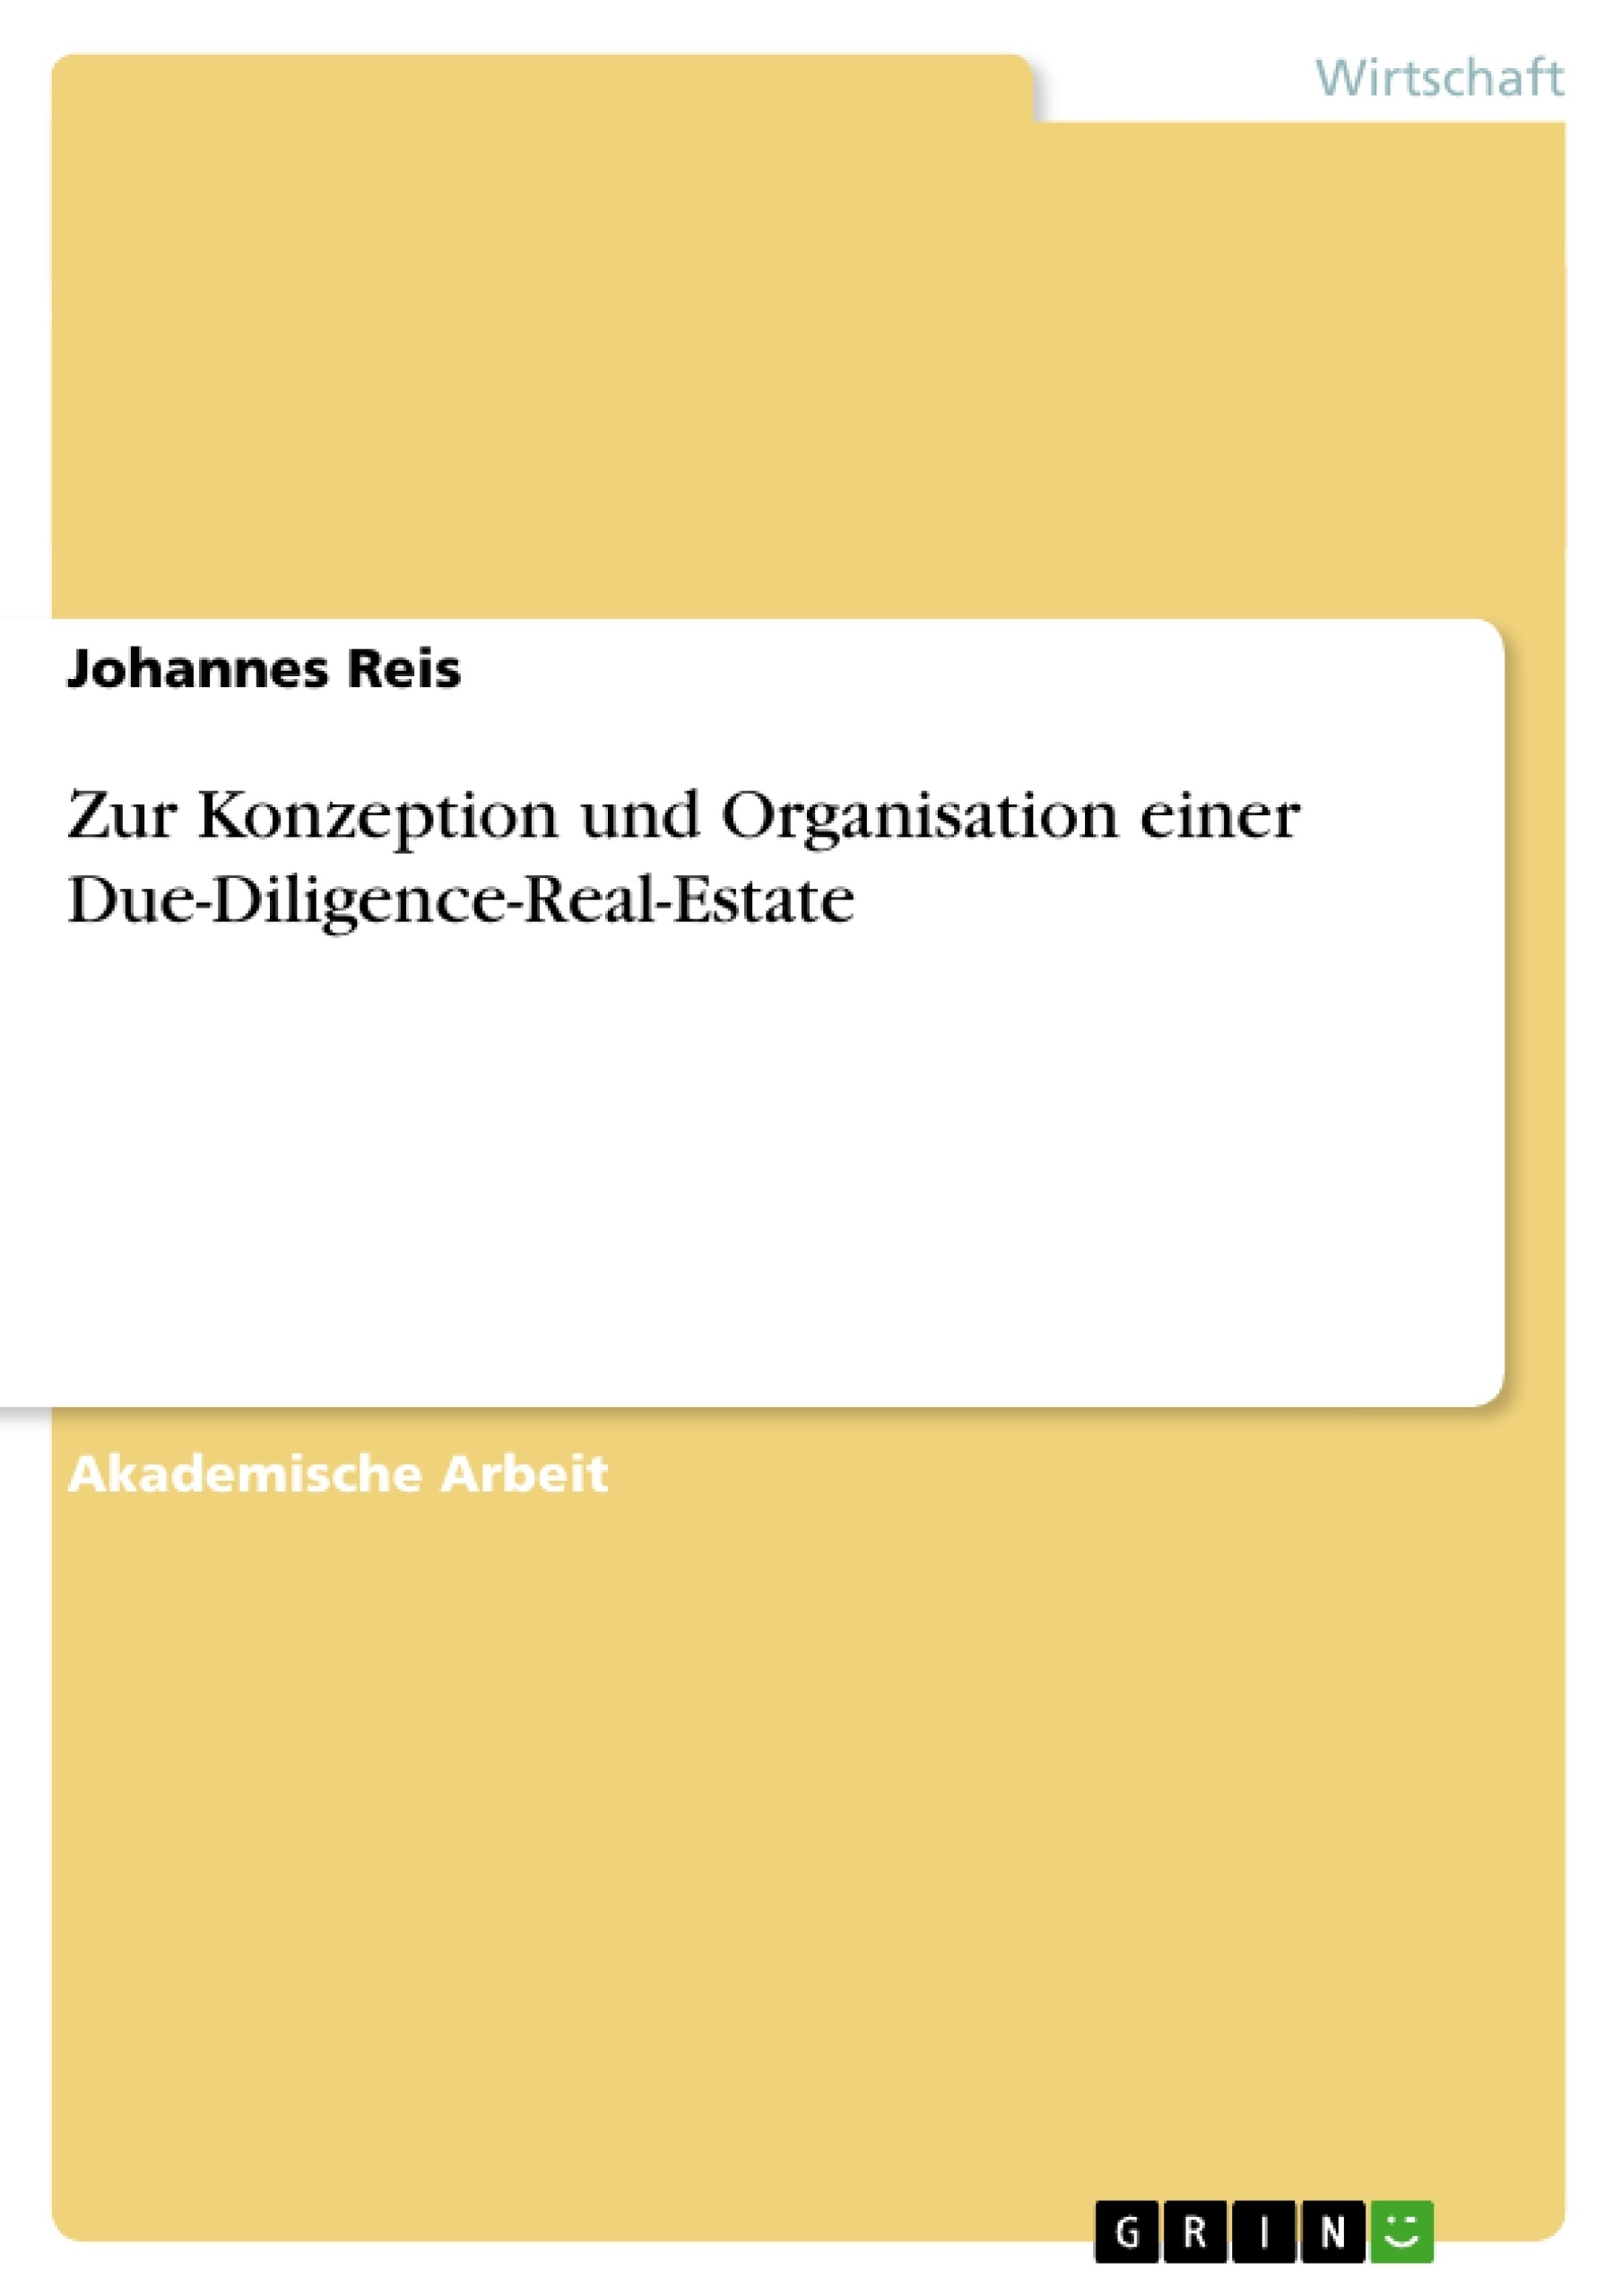 Titel: Zur Konzeption und Organisation einer Due-Diligence-Real-Estate